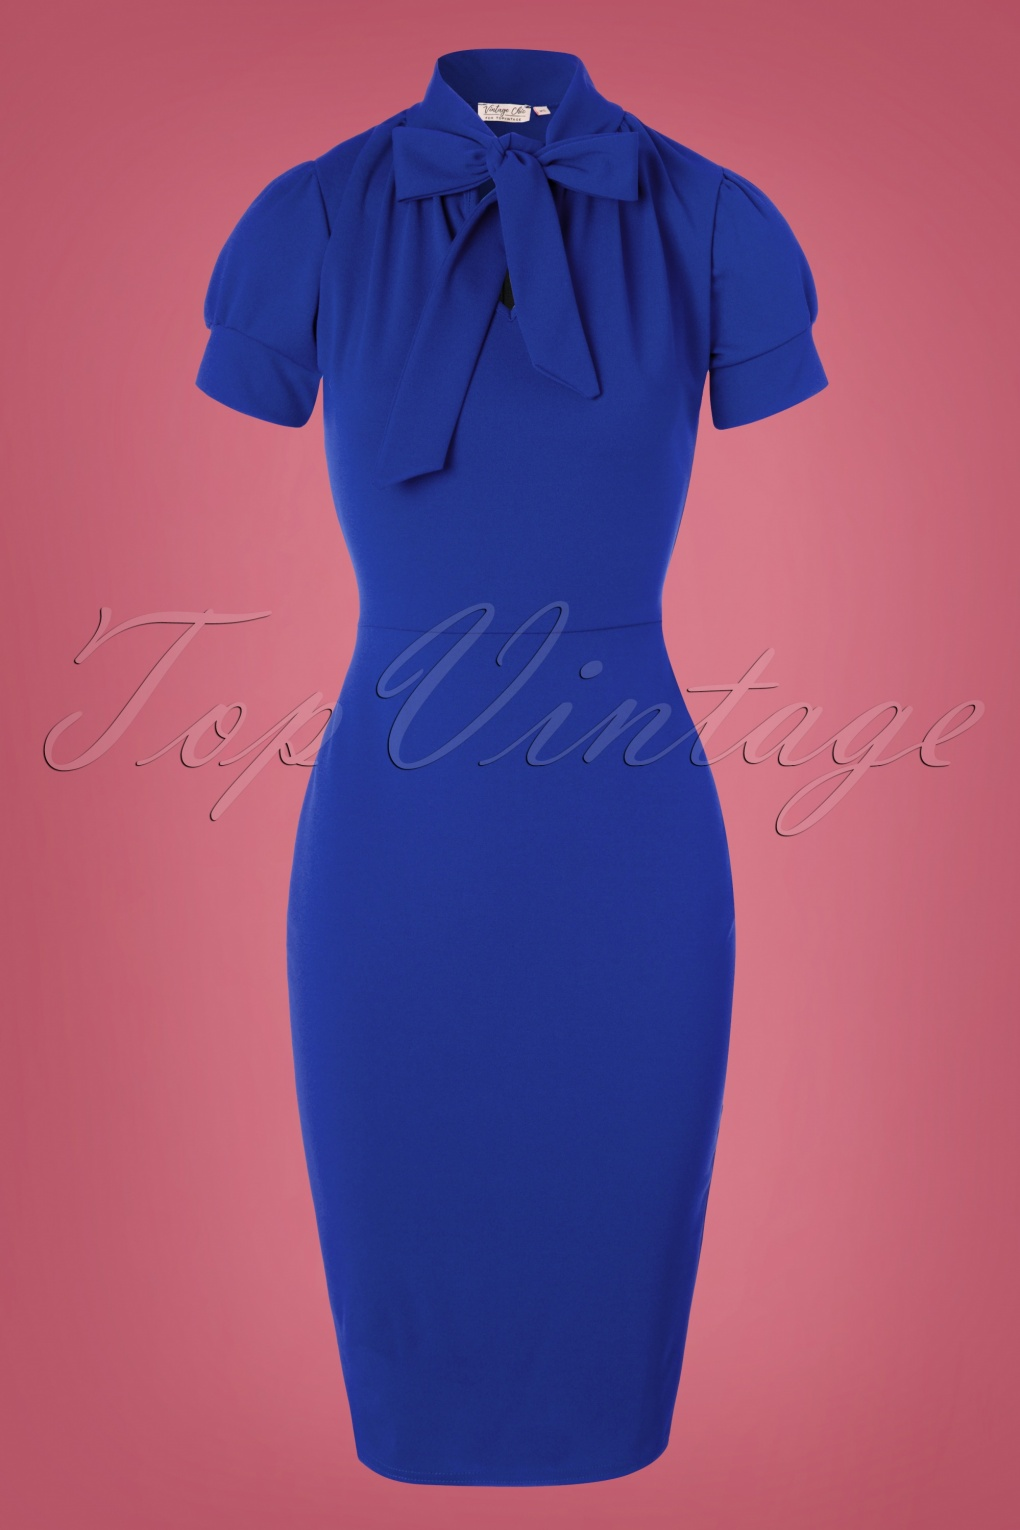 Pin Up Dresses | Pinup Clothing & Fashion 50s Bonnie Tie Neck Pencil Dress in Royal Blue £44.79 AT vintagedancer.com